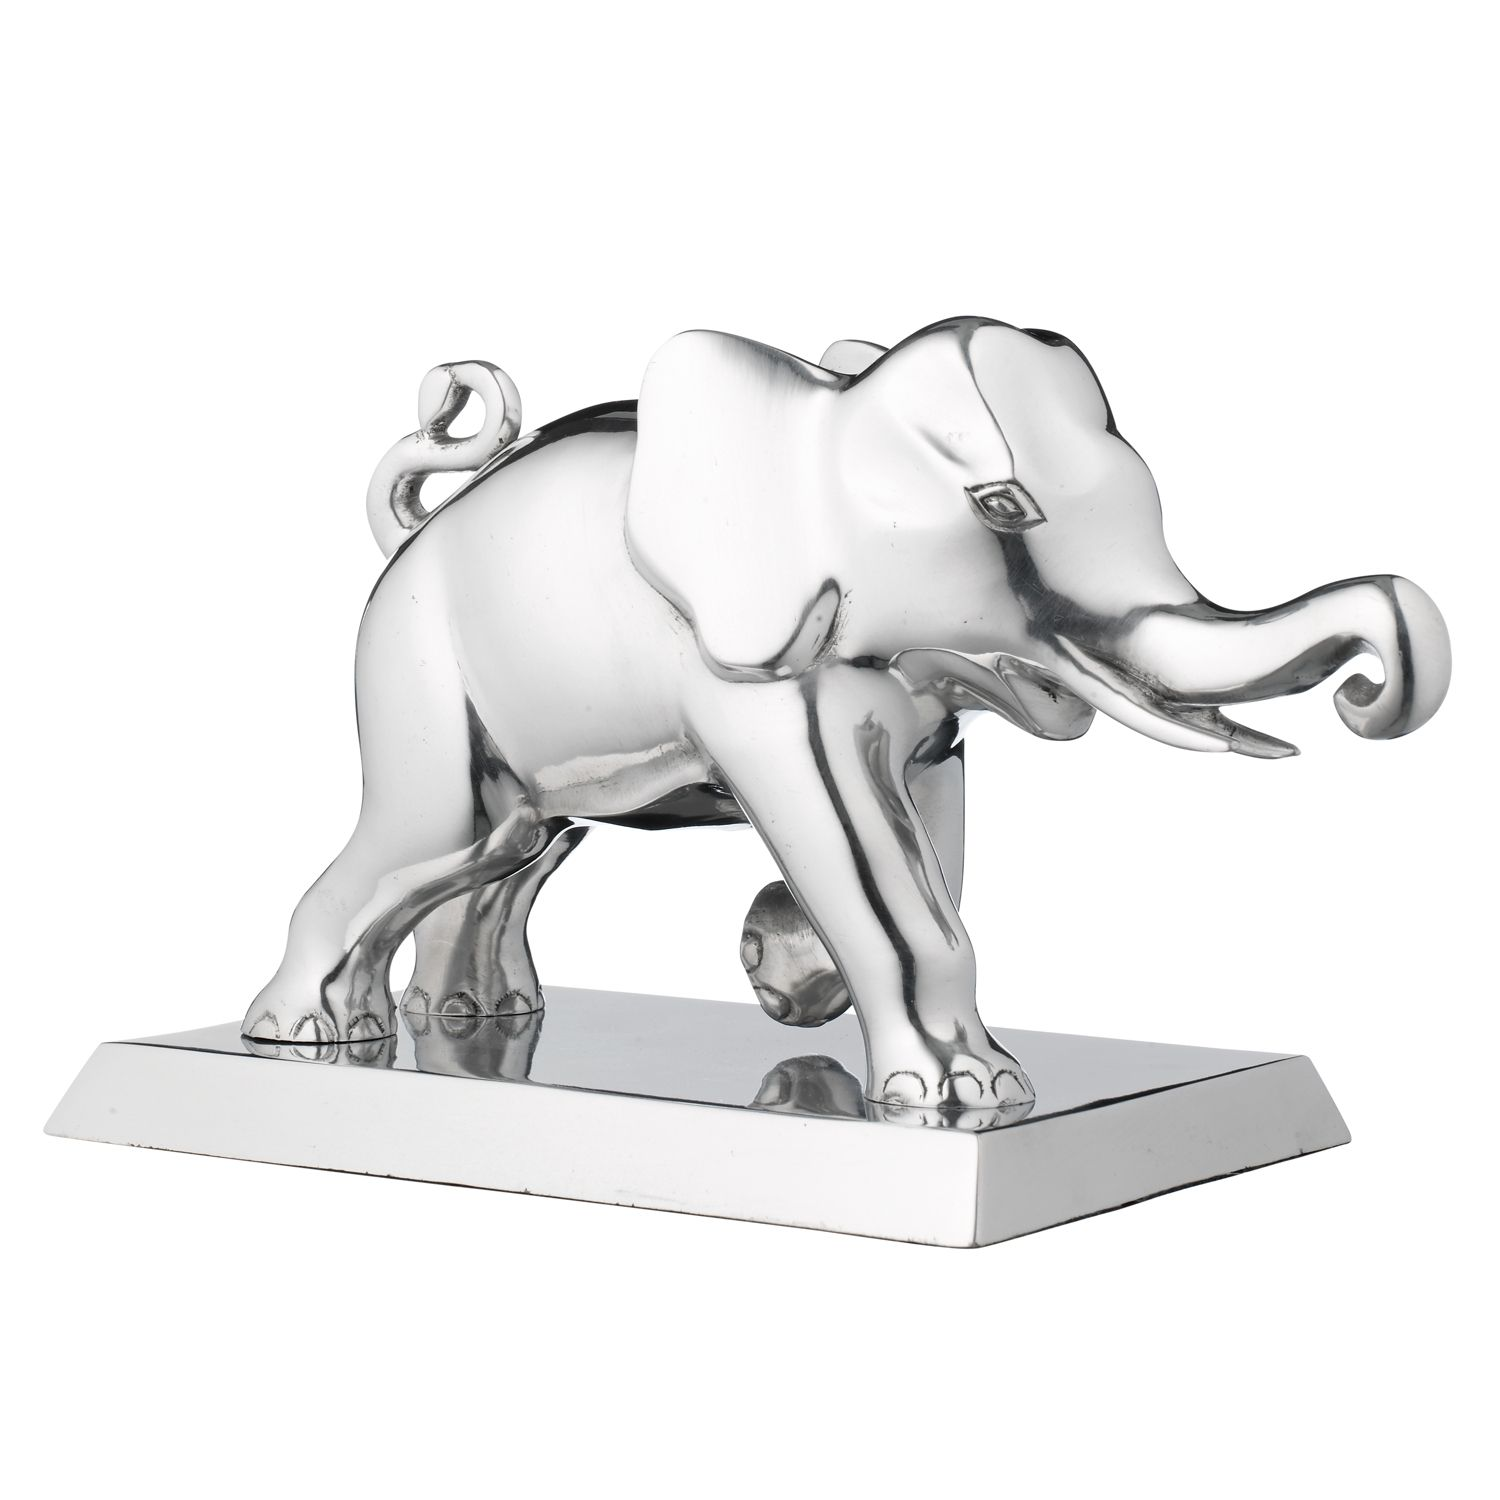 The Elephant Is A Symbol Of Good Luck Trunk Up Obstacles Overcome